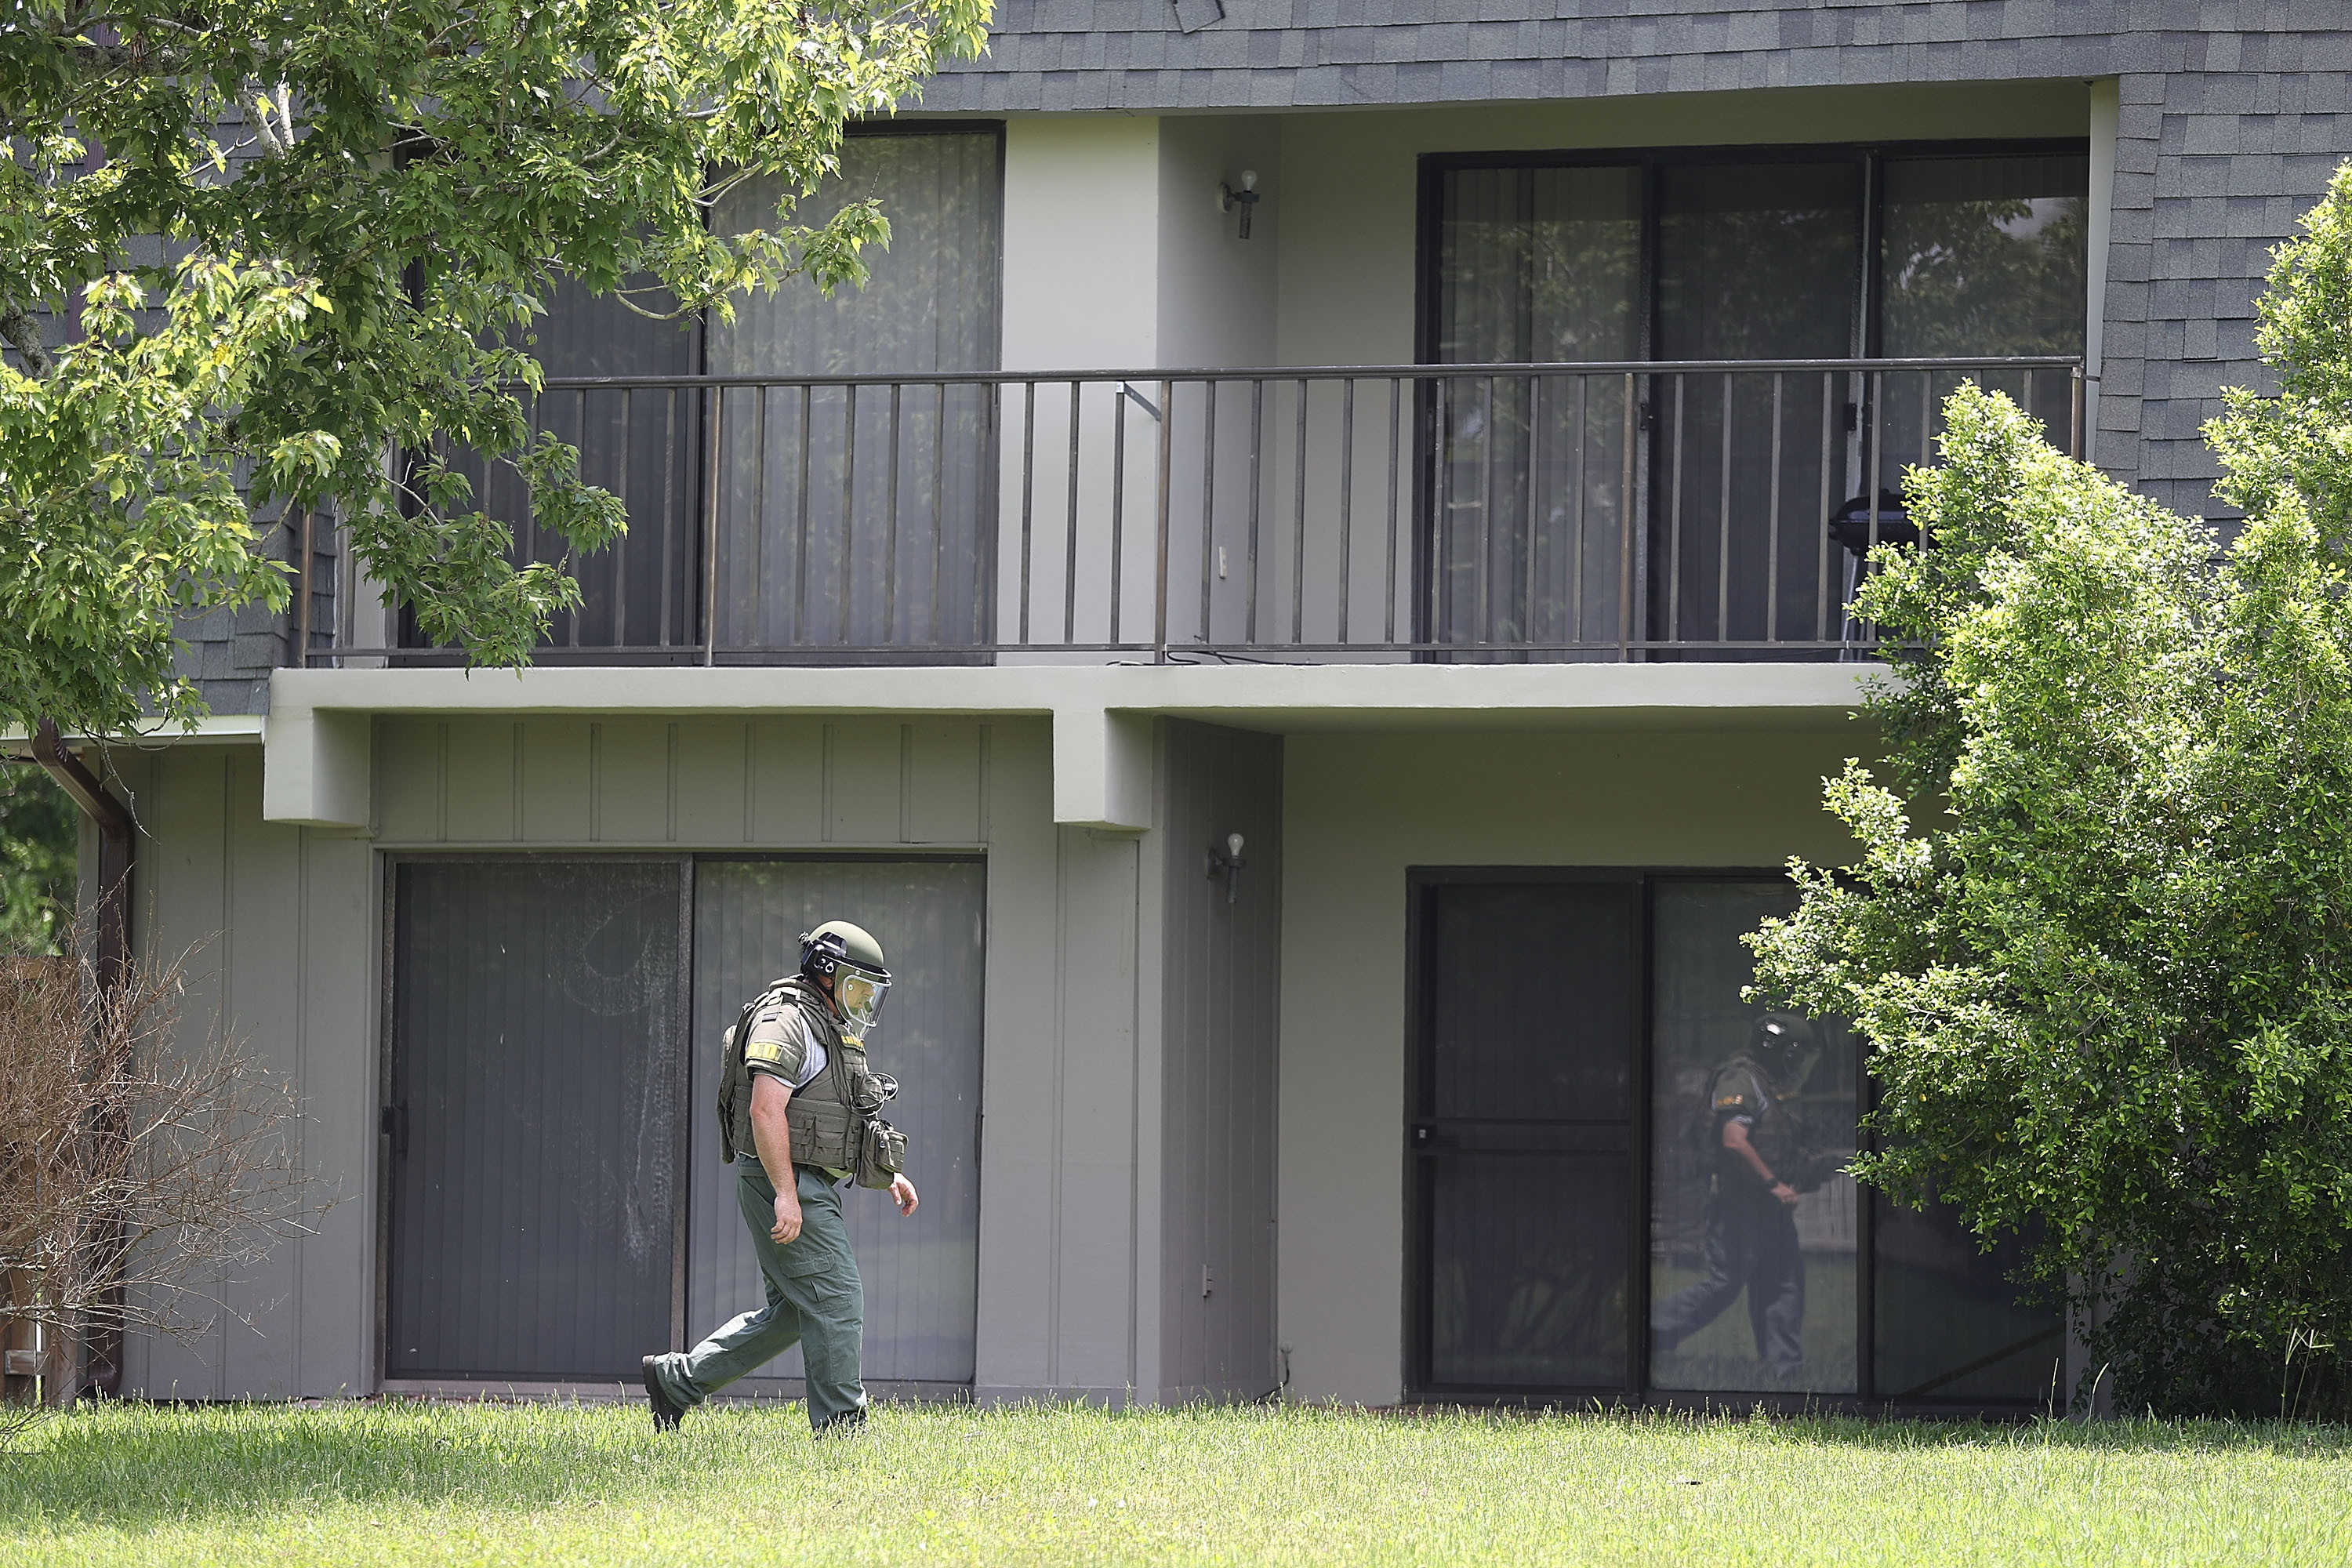 A Bomb Disposal Unit checks for explosives around the apartment building where shooting suspect Omar Mateen is believed to have lived on June 12, 2016 in Fort Pierce, Florida. (Getty)